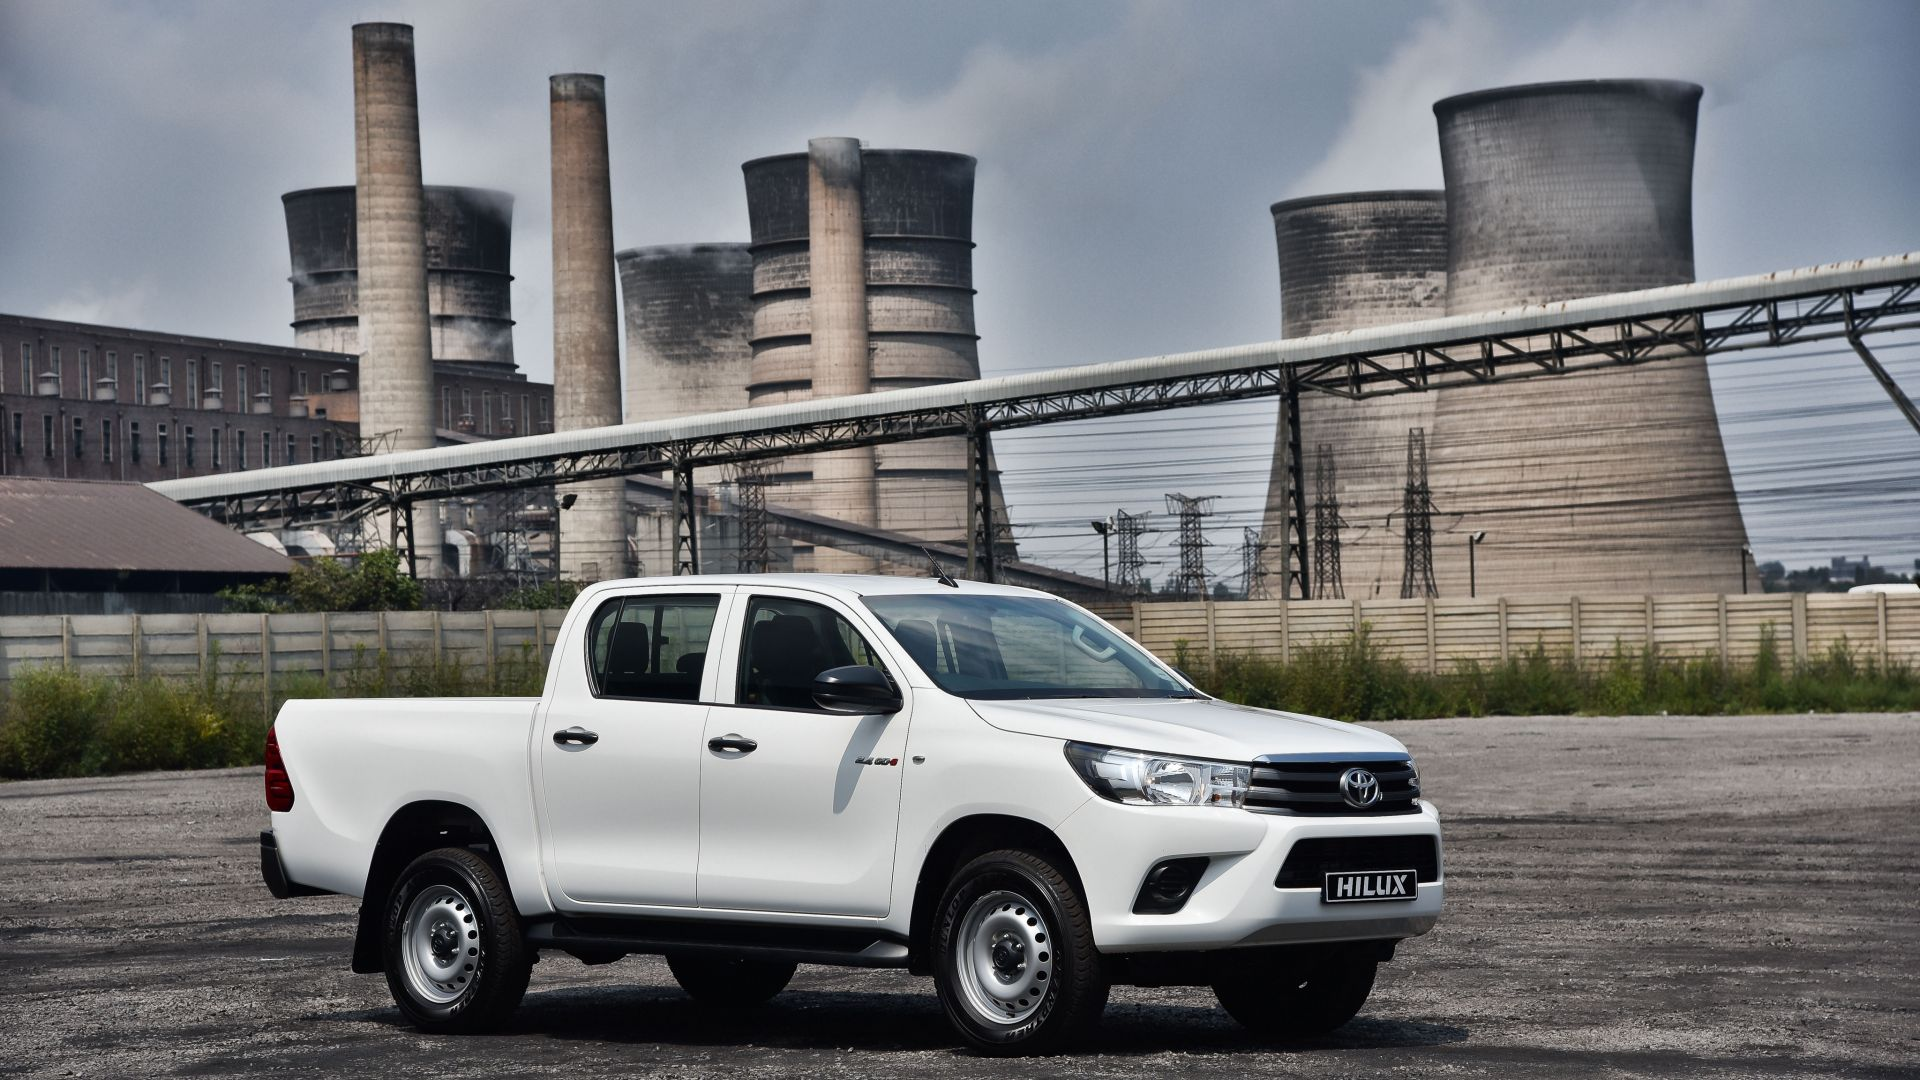 Toyota Hilux, 4x4, Srx, Double Cab, Pickup, White - Toyota Hilux 2017 White , HD Wallpaper & Backgrounds